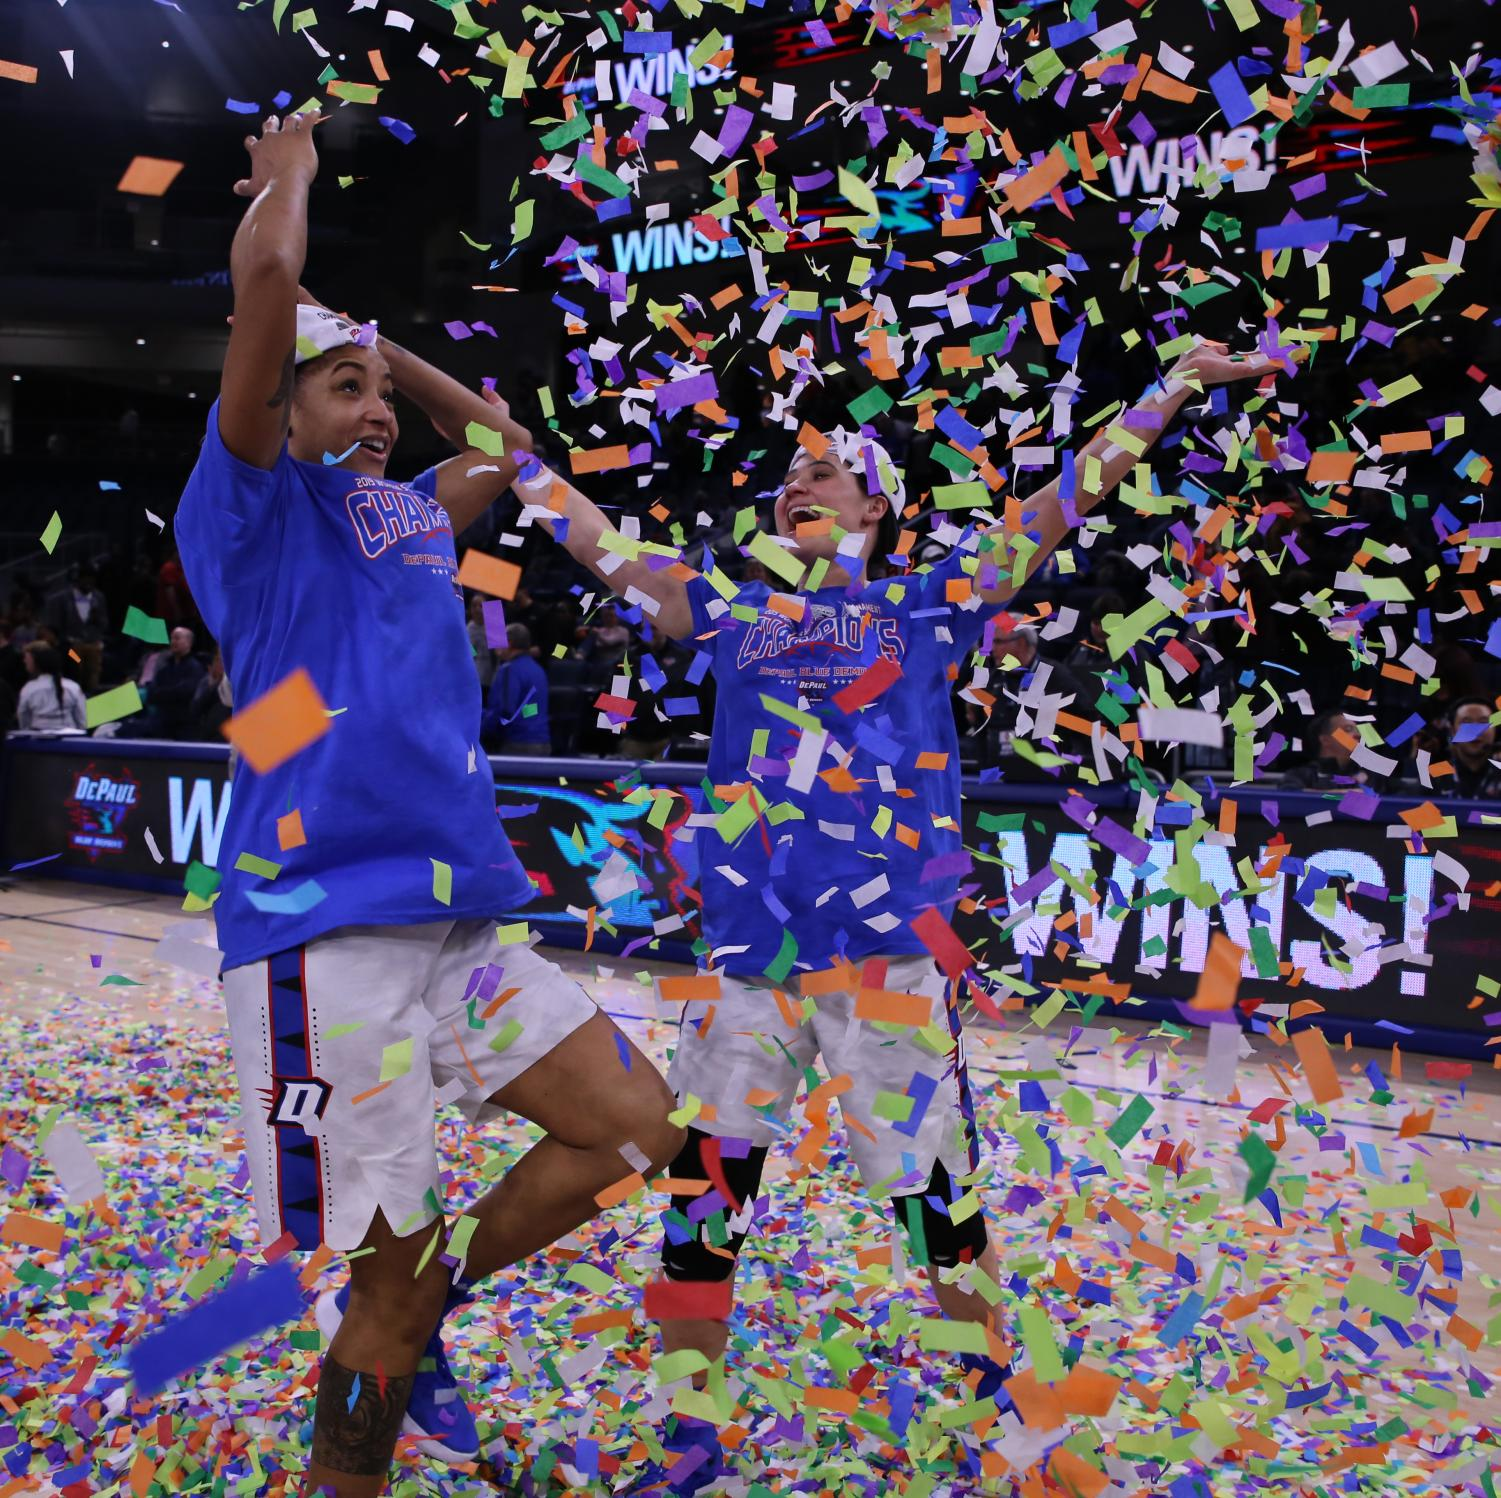 DePaul+seniors+Mart%27e+Grays+and+Rebekah+Dahlman+celebrate+with+confetti+after+the+Blue+Demons+rallied+for+74-73+victory+Tuesday+night+at+Wintrust+Arena.++Alexa+Sandler+%7C+The+DePaulia